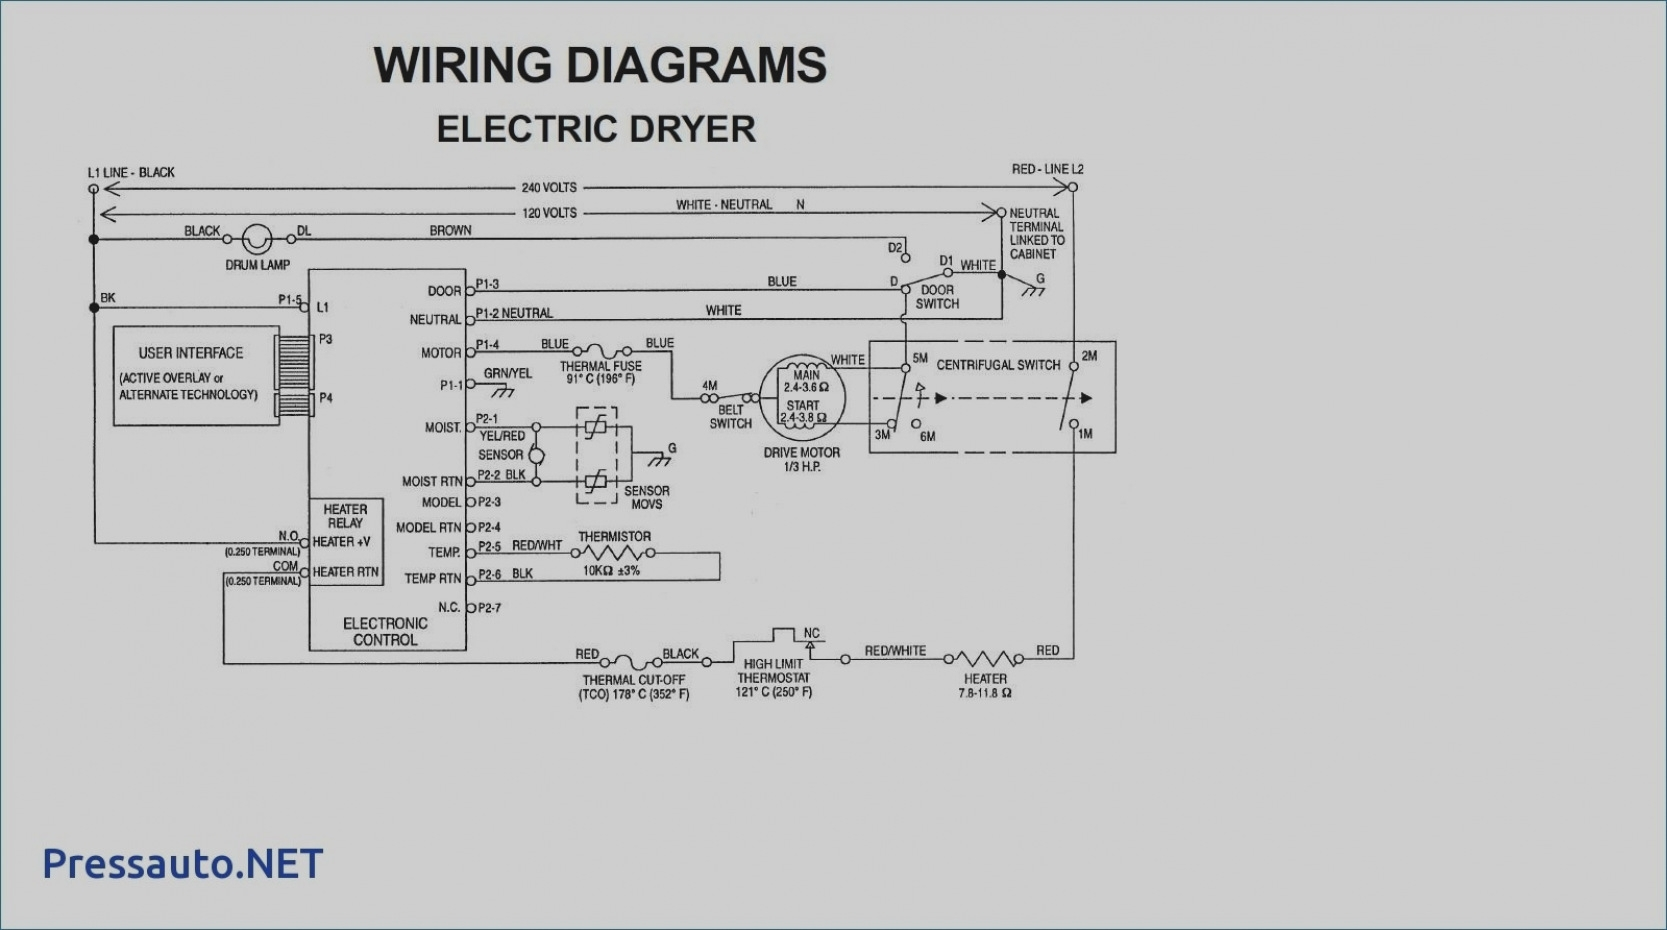 [DIAGRAM] Whirlpool Electric Dryer Wiring Diagram FULL